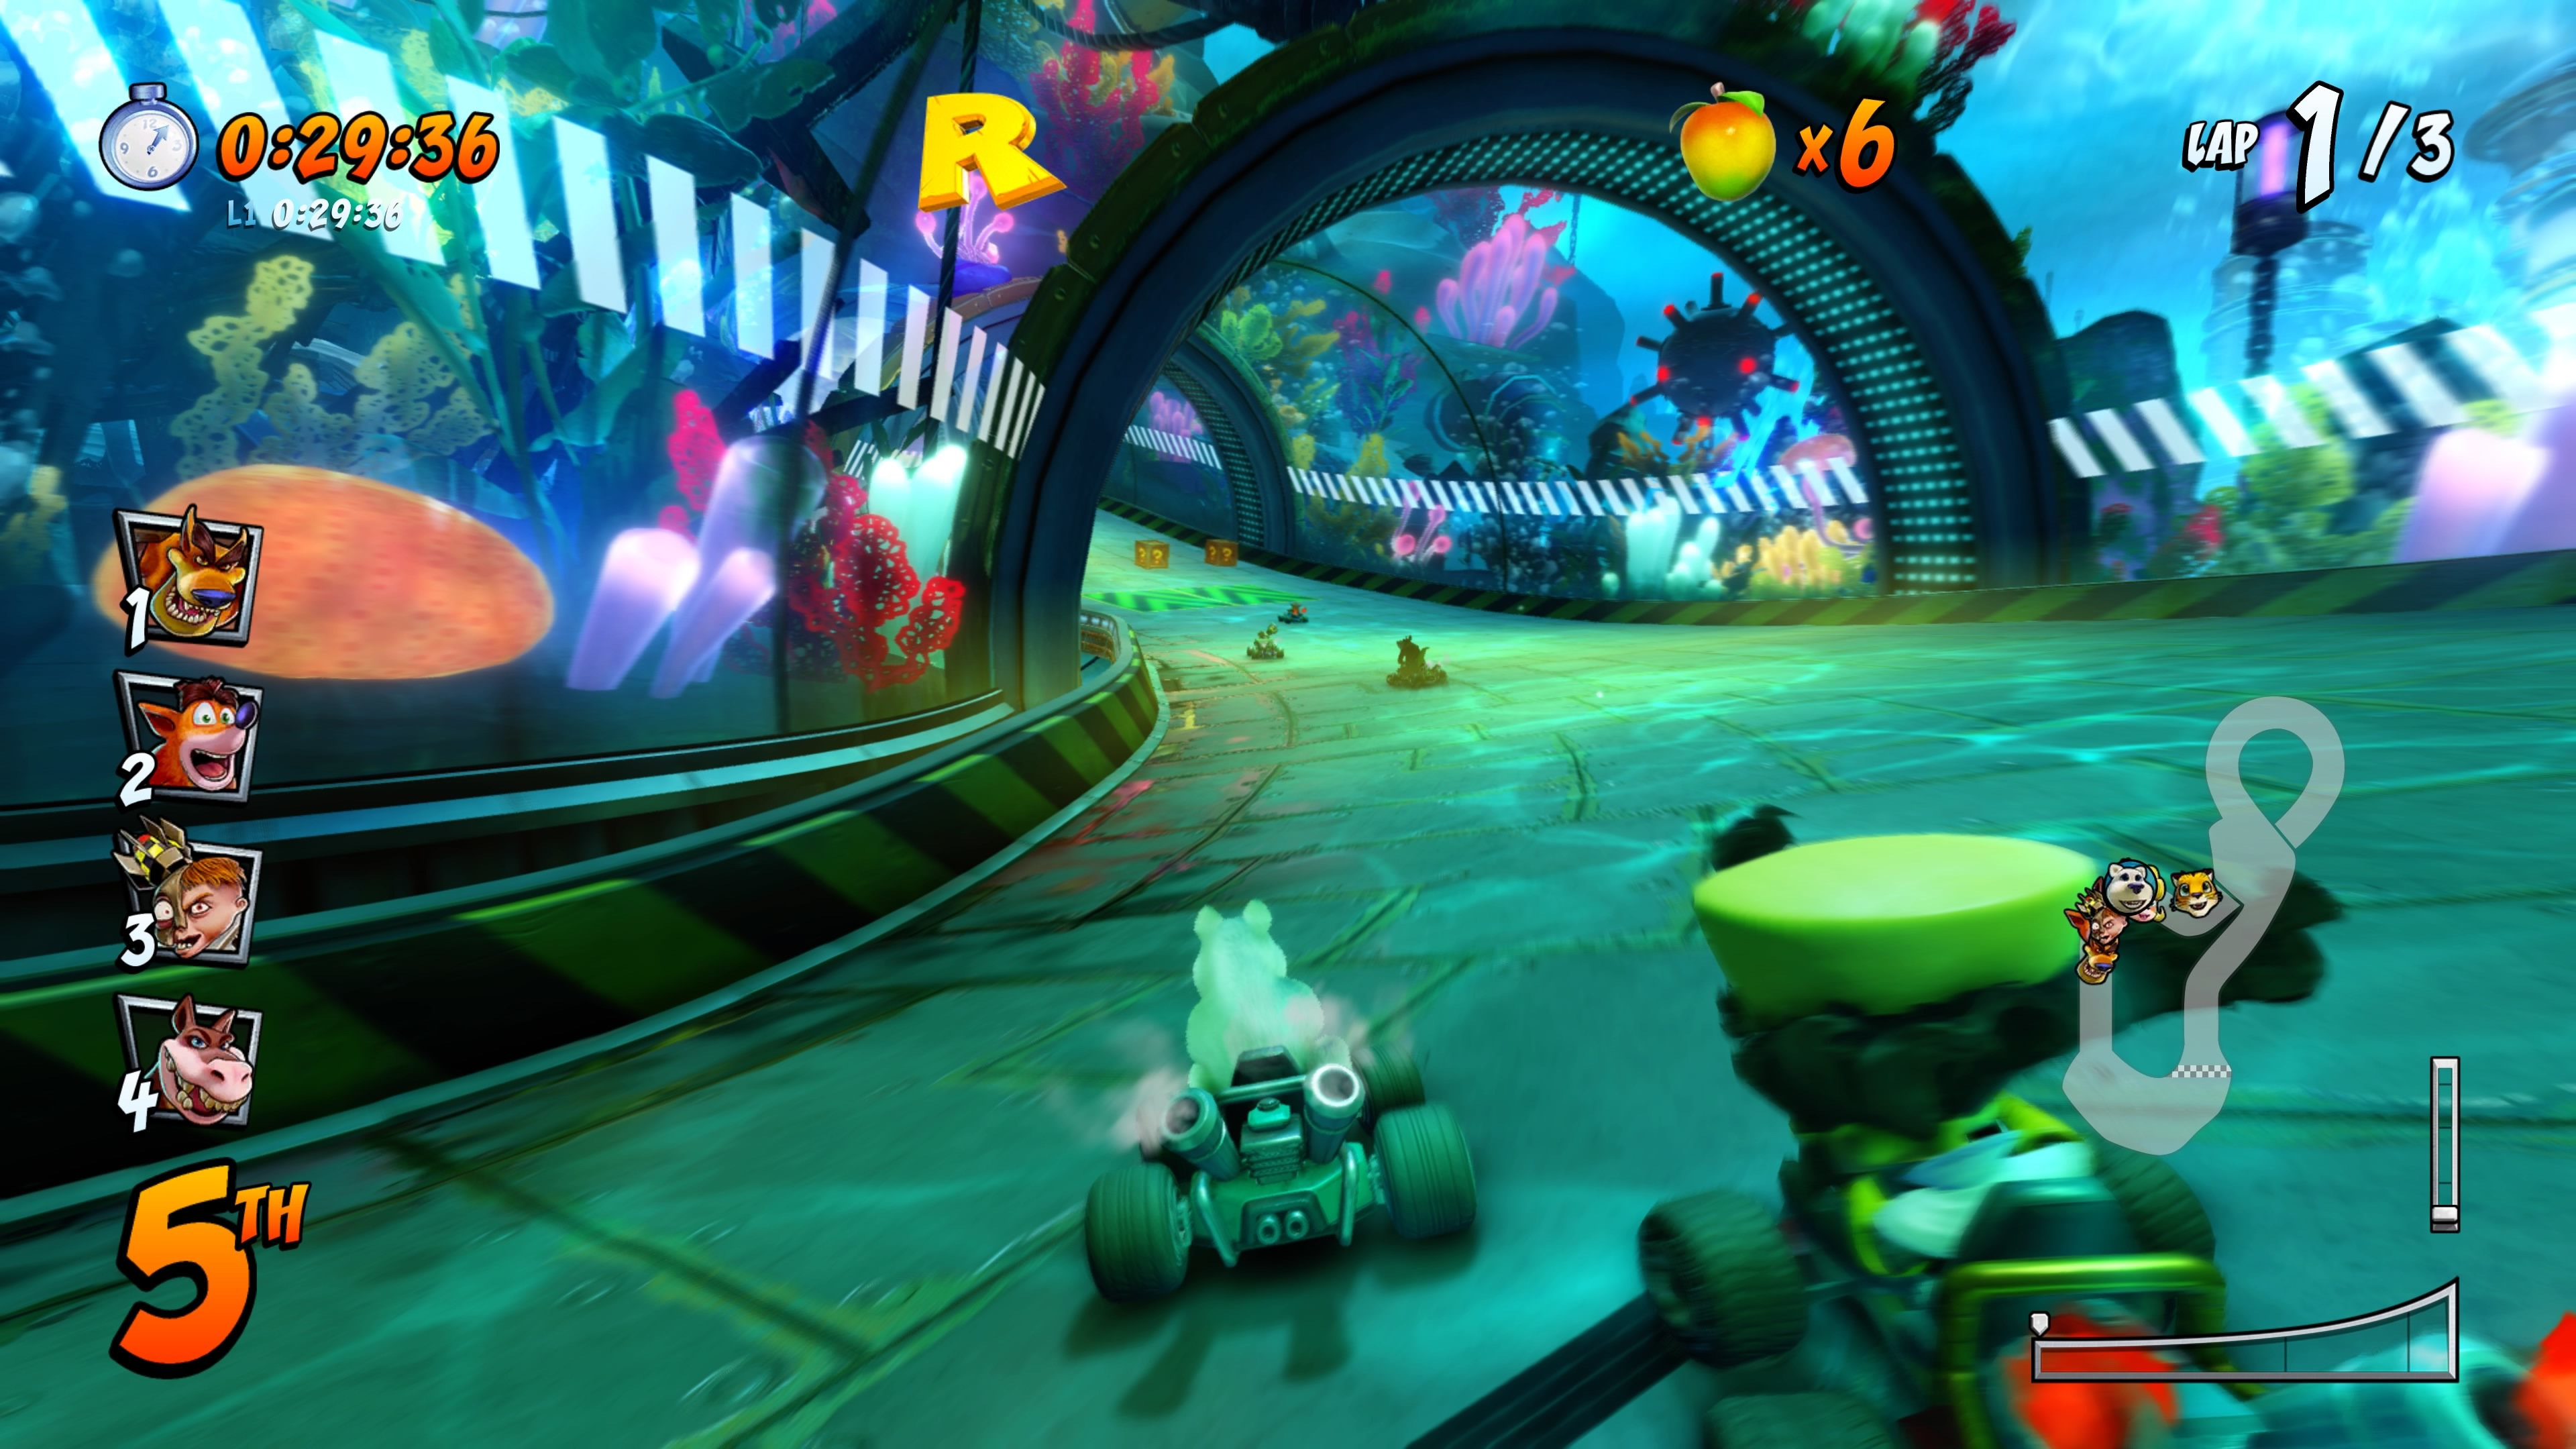 Crash Team Racing Nitro-Fueled for MacBook gameplay